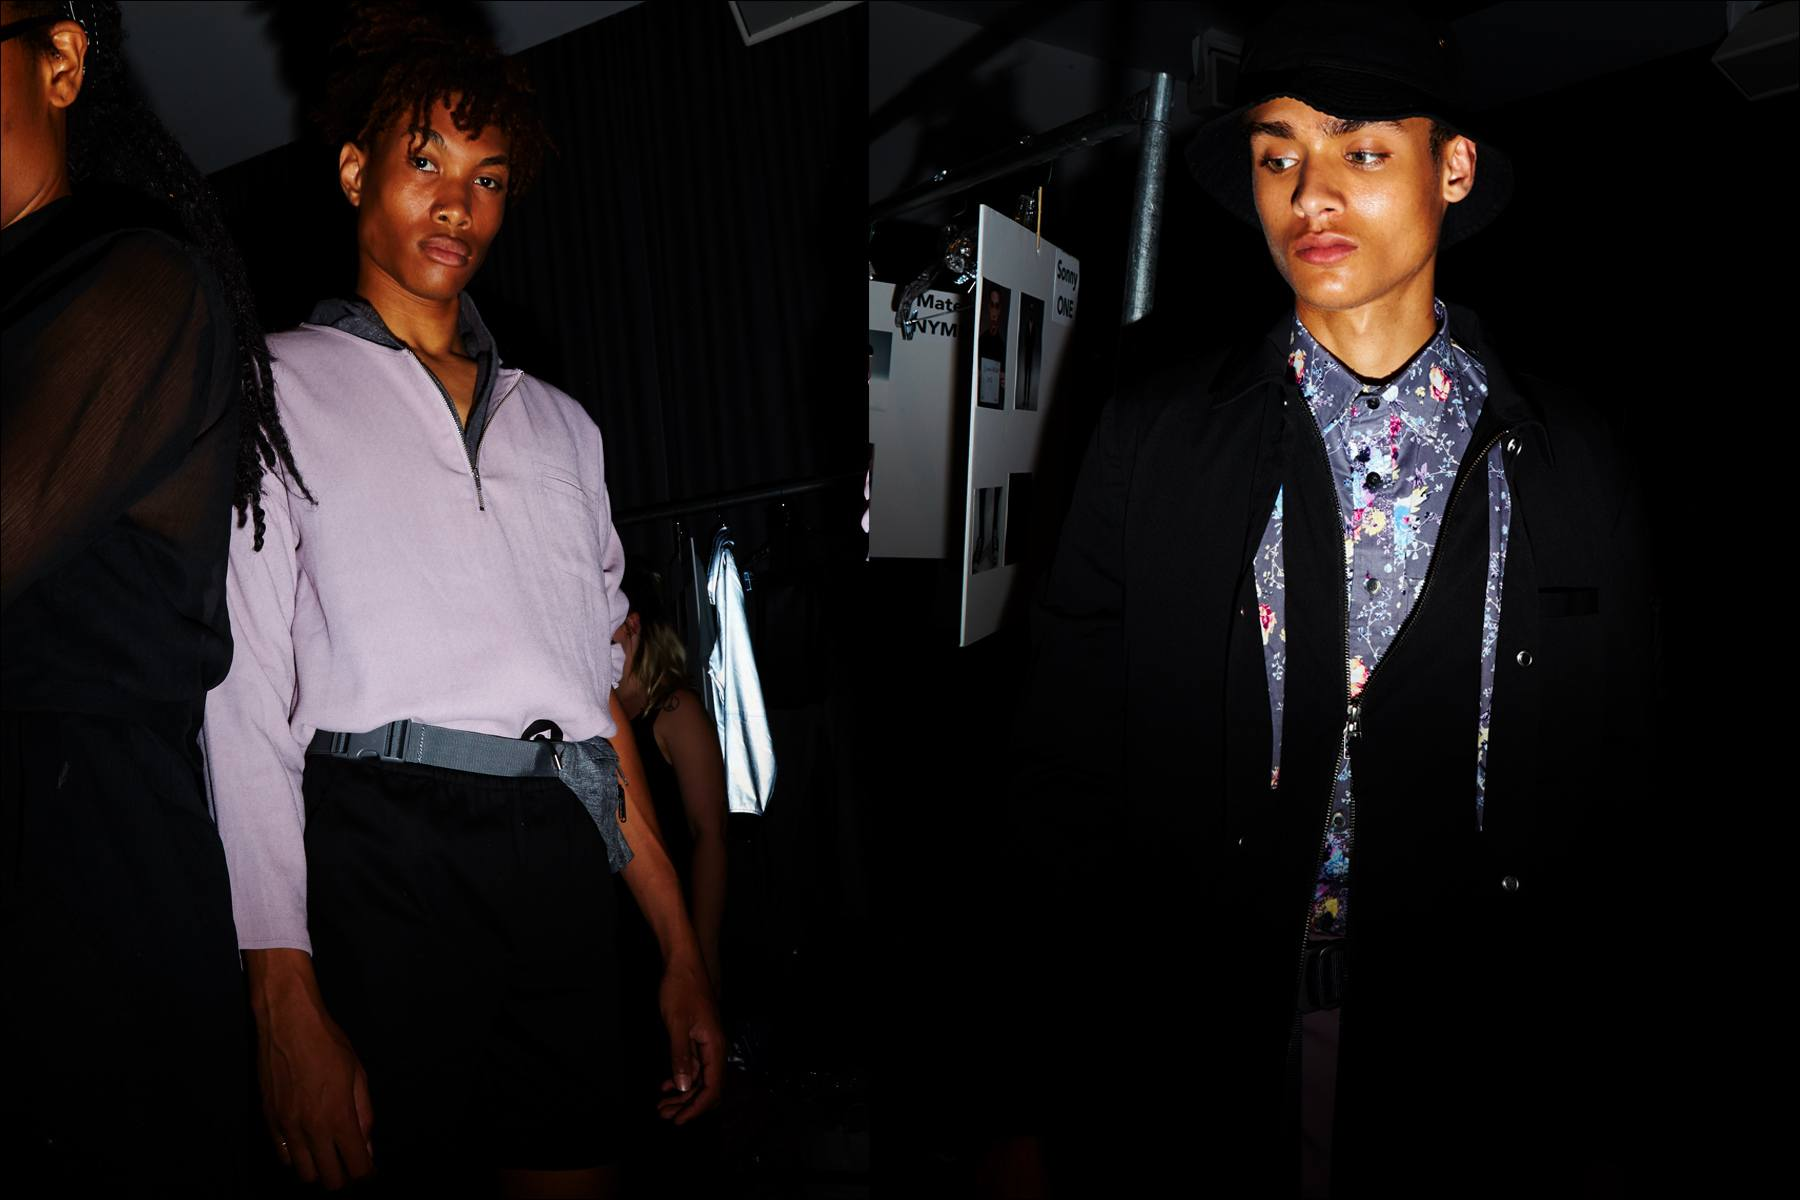 Male models snapped backstage before walking at the Matiere menswear show for Spring/Summer 2018. Photography by Alexander Thompson for Ponyboy magazine New York.